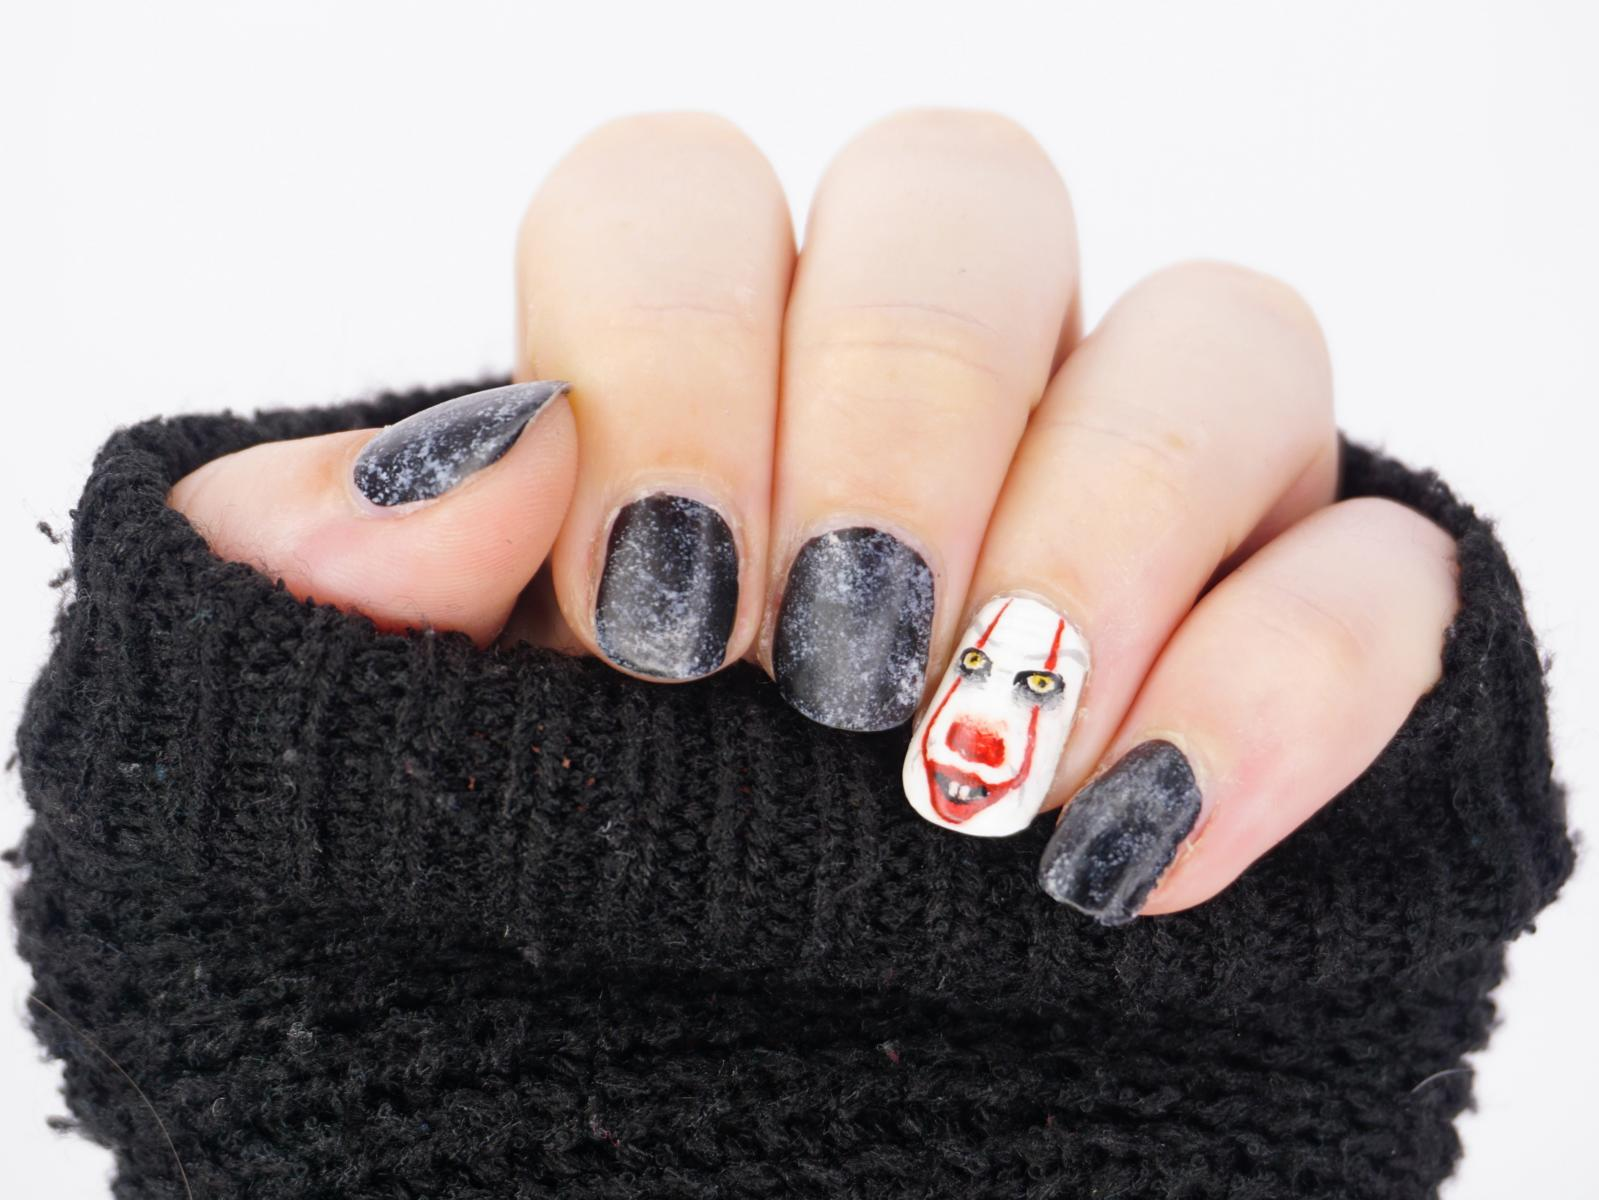 Montagspinselei Horrorfilm Es Pennywise It Nailart